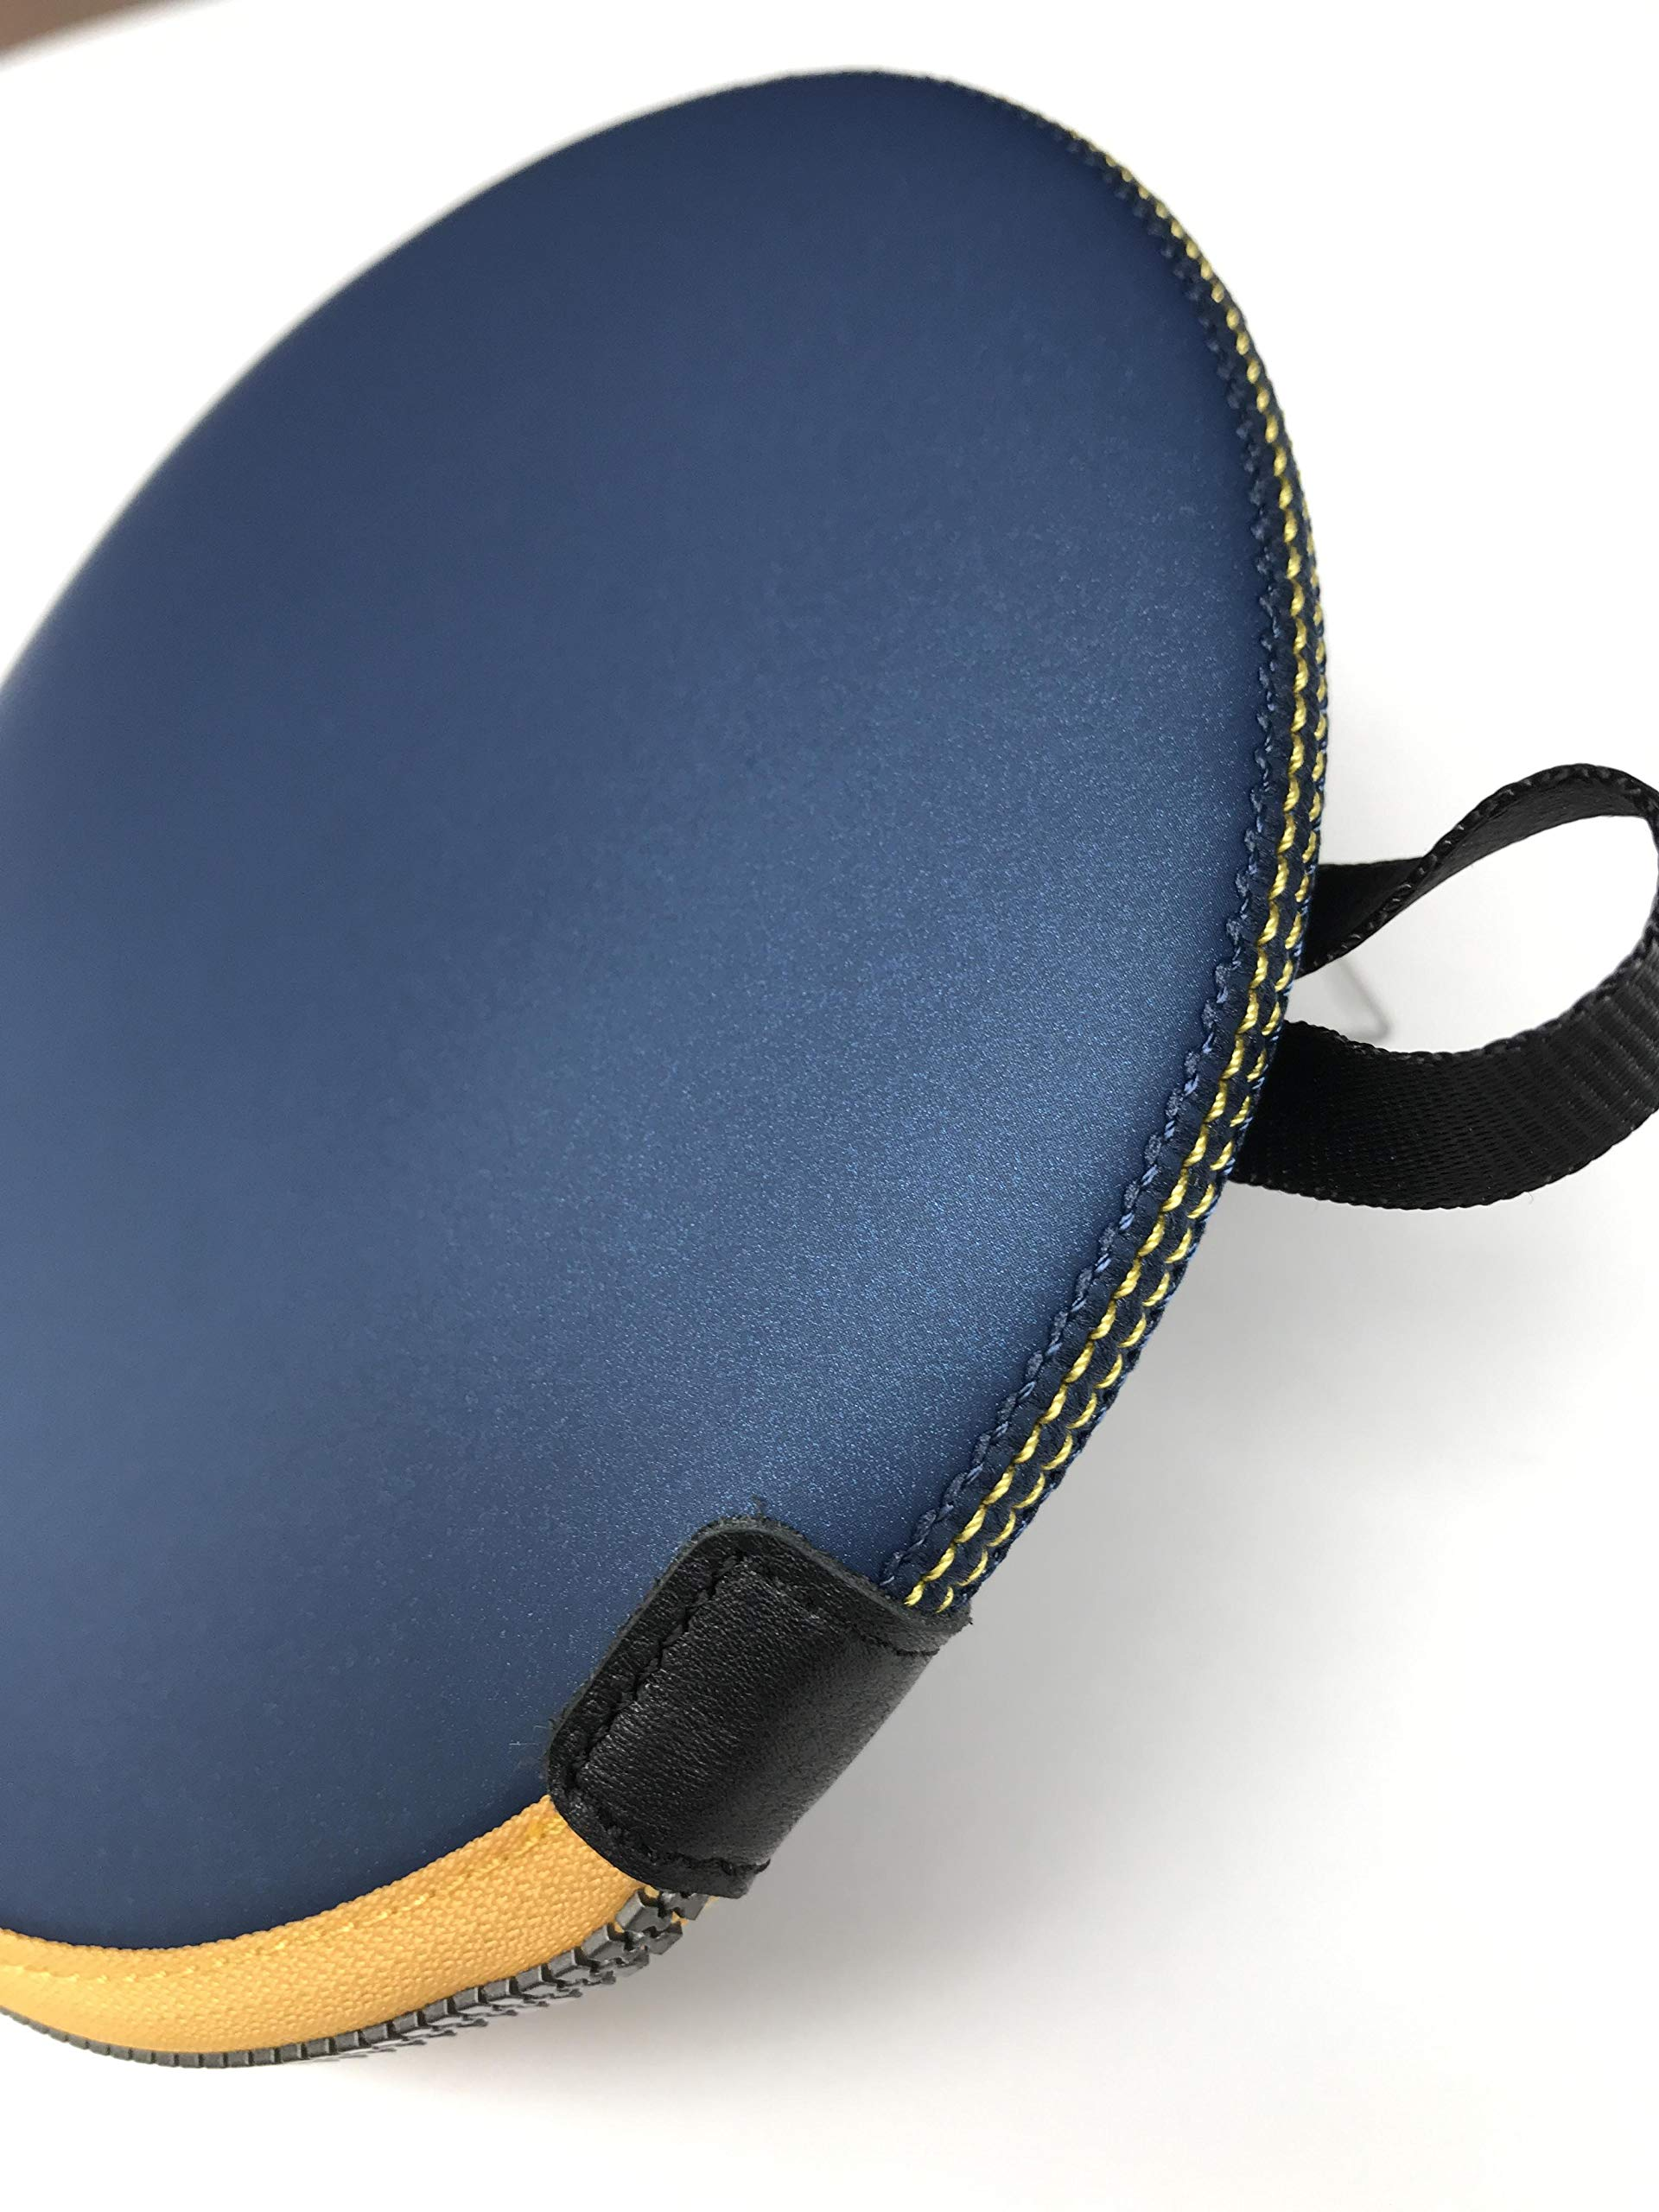 ONEJOY Ping Pong,Table Tennis Racquet Bag,Sleeves with Zipper AJ60,Loop to Hook,19cm x 17cm, for 1 Racquet/Racket/Paddle. by ONEJOY (Image #4)